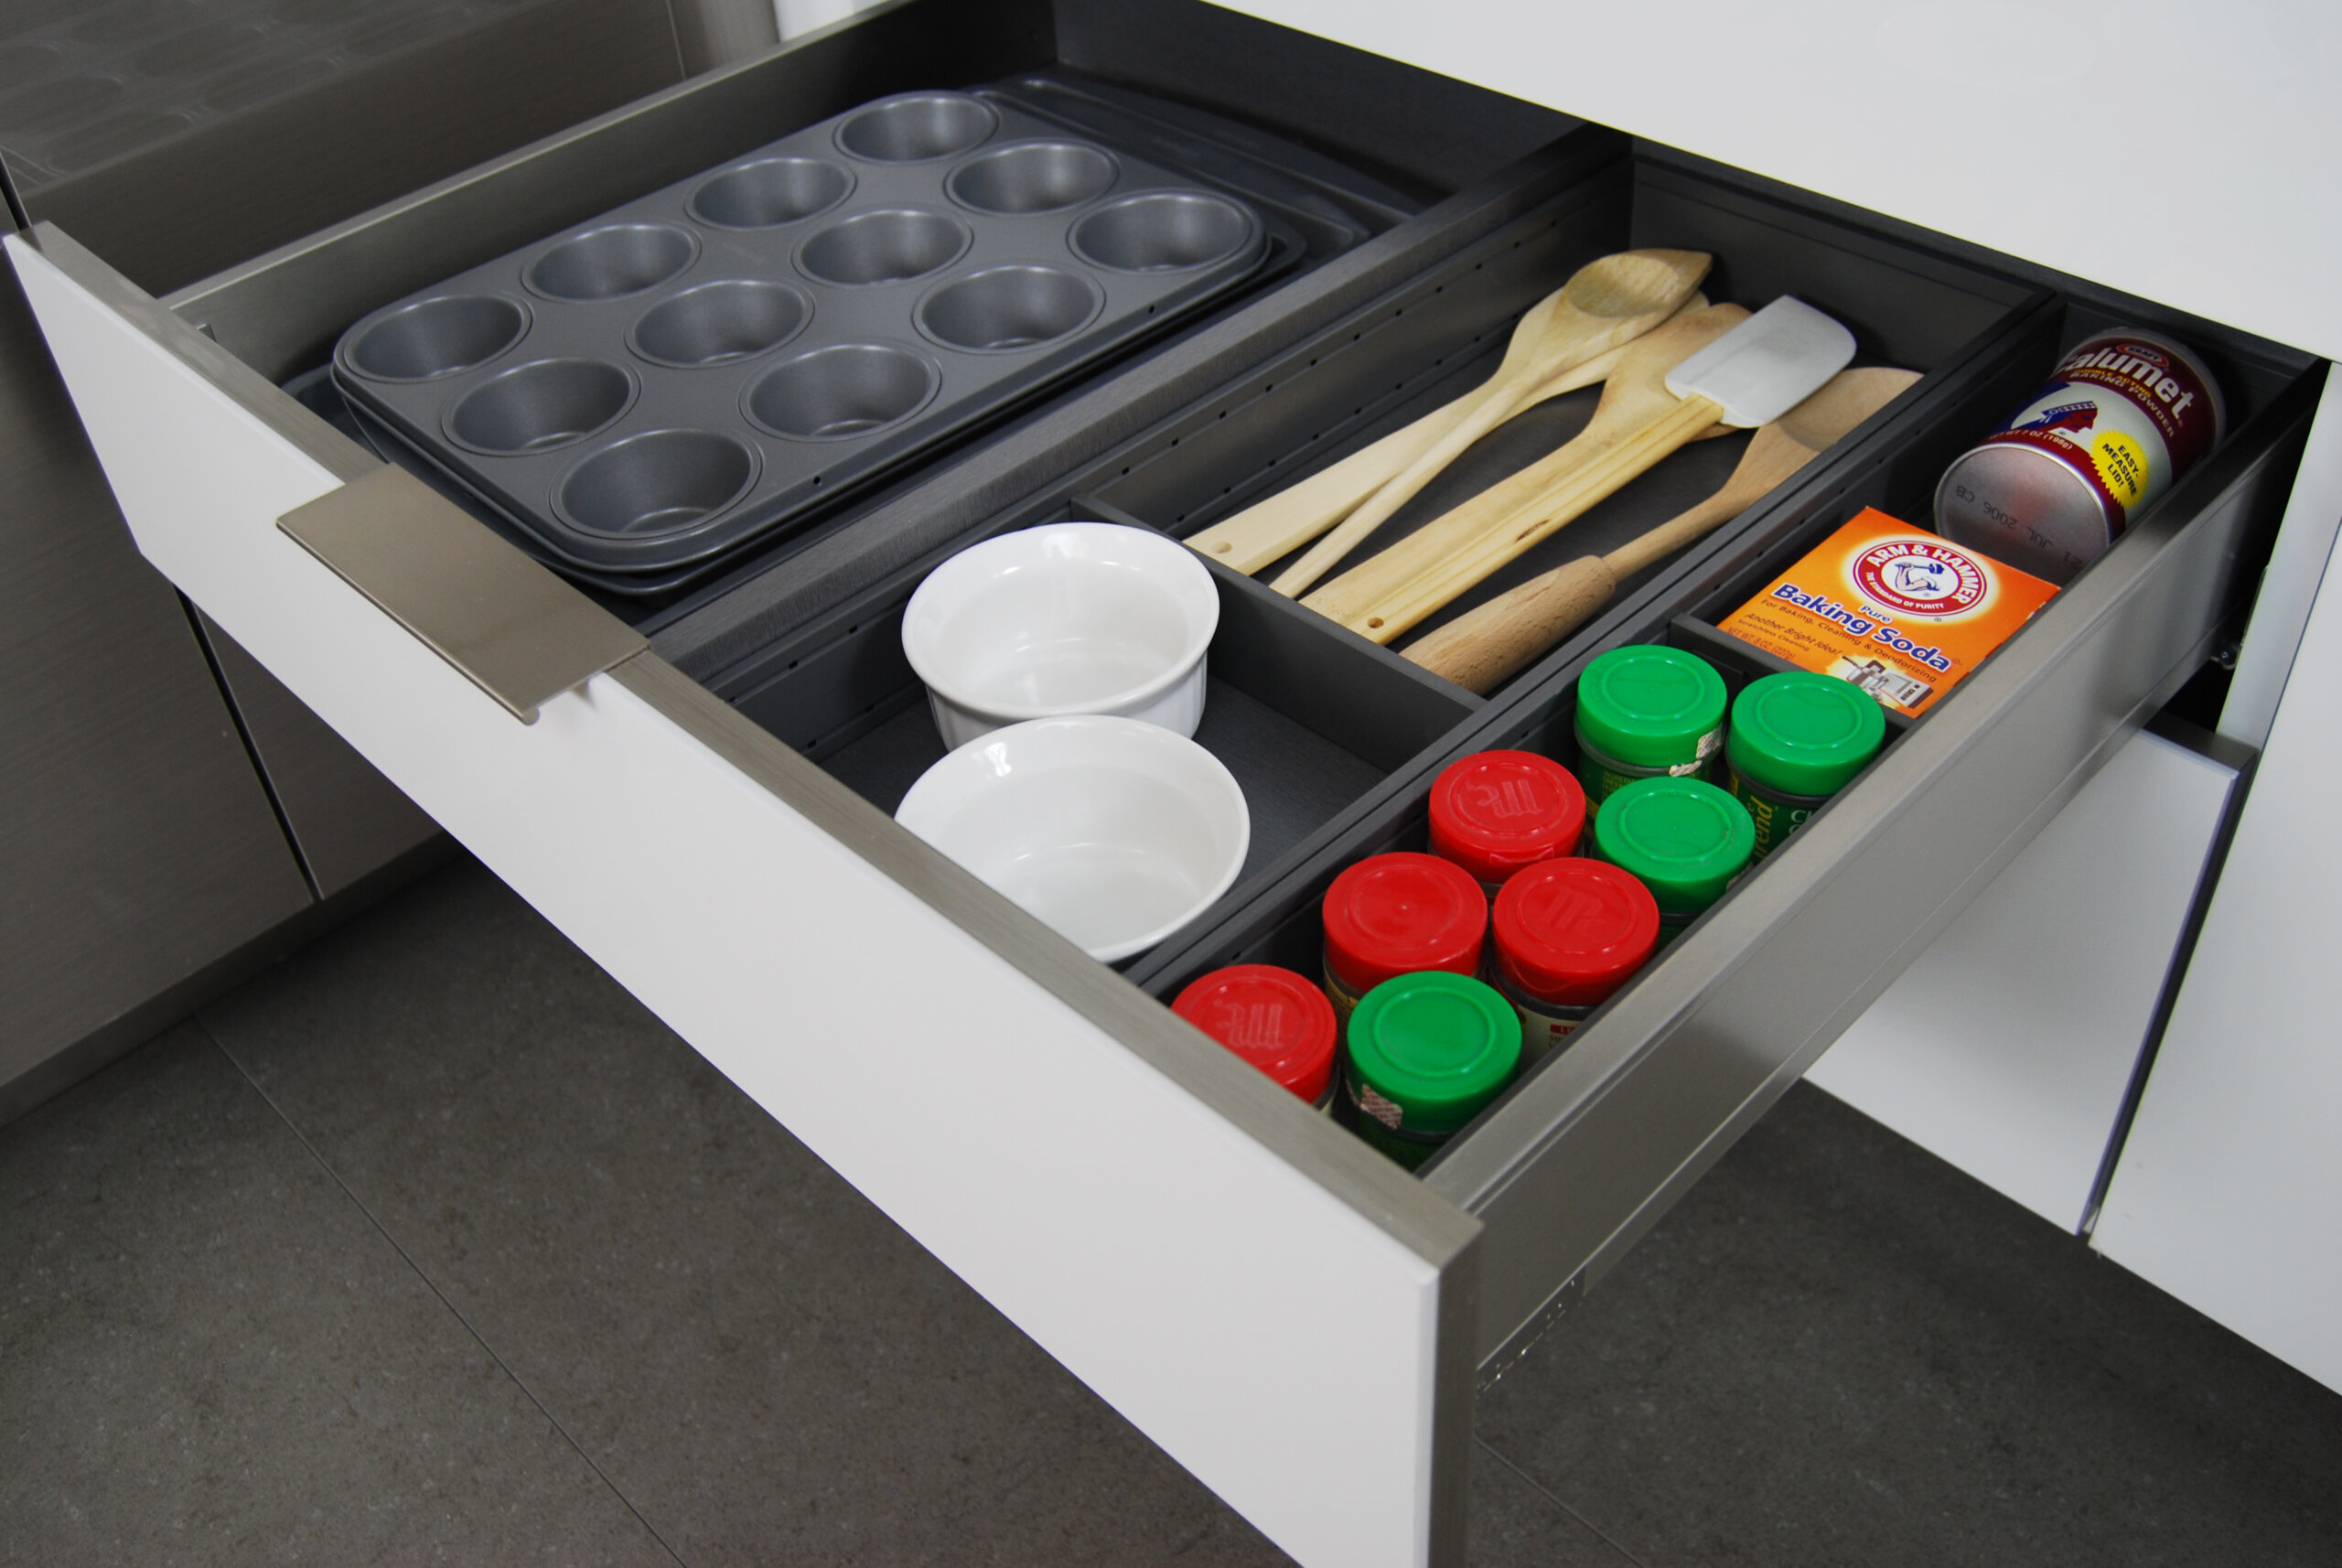 Utensil Organizer and Partition for Stainless Steel Drawer